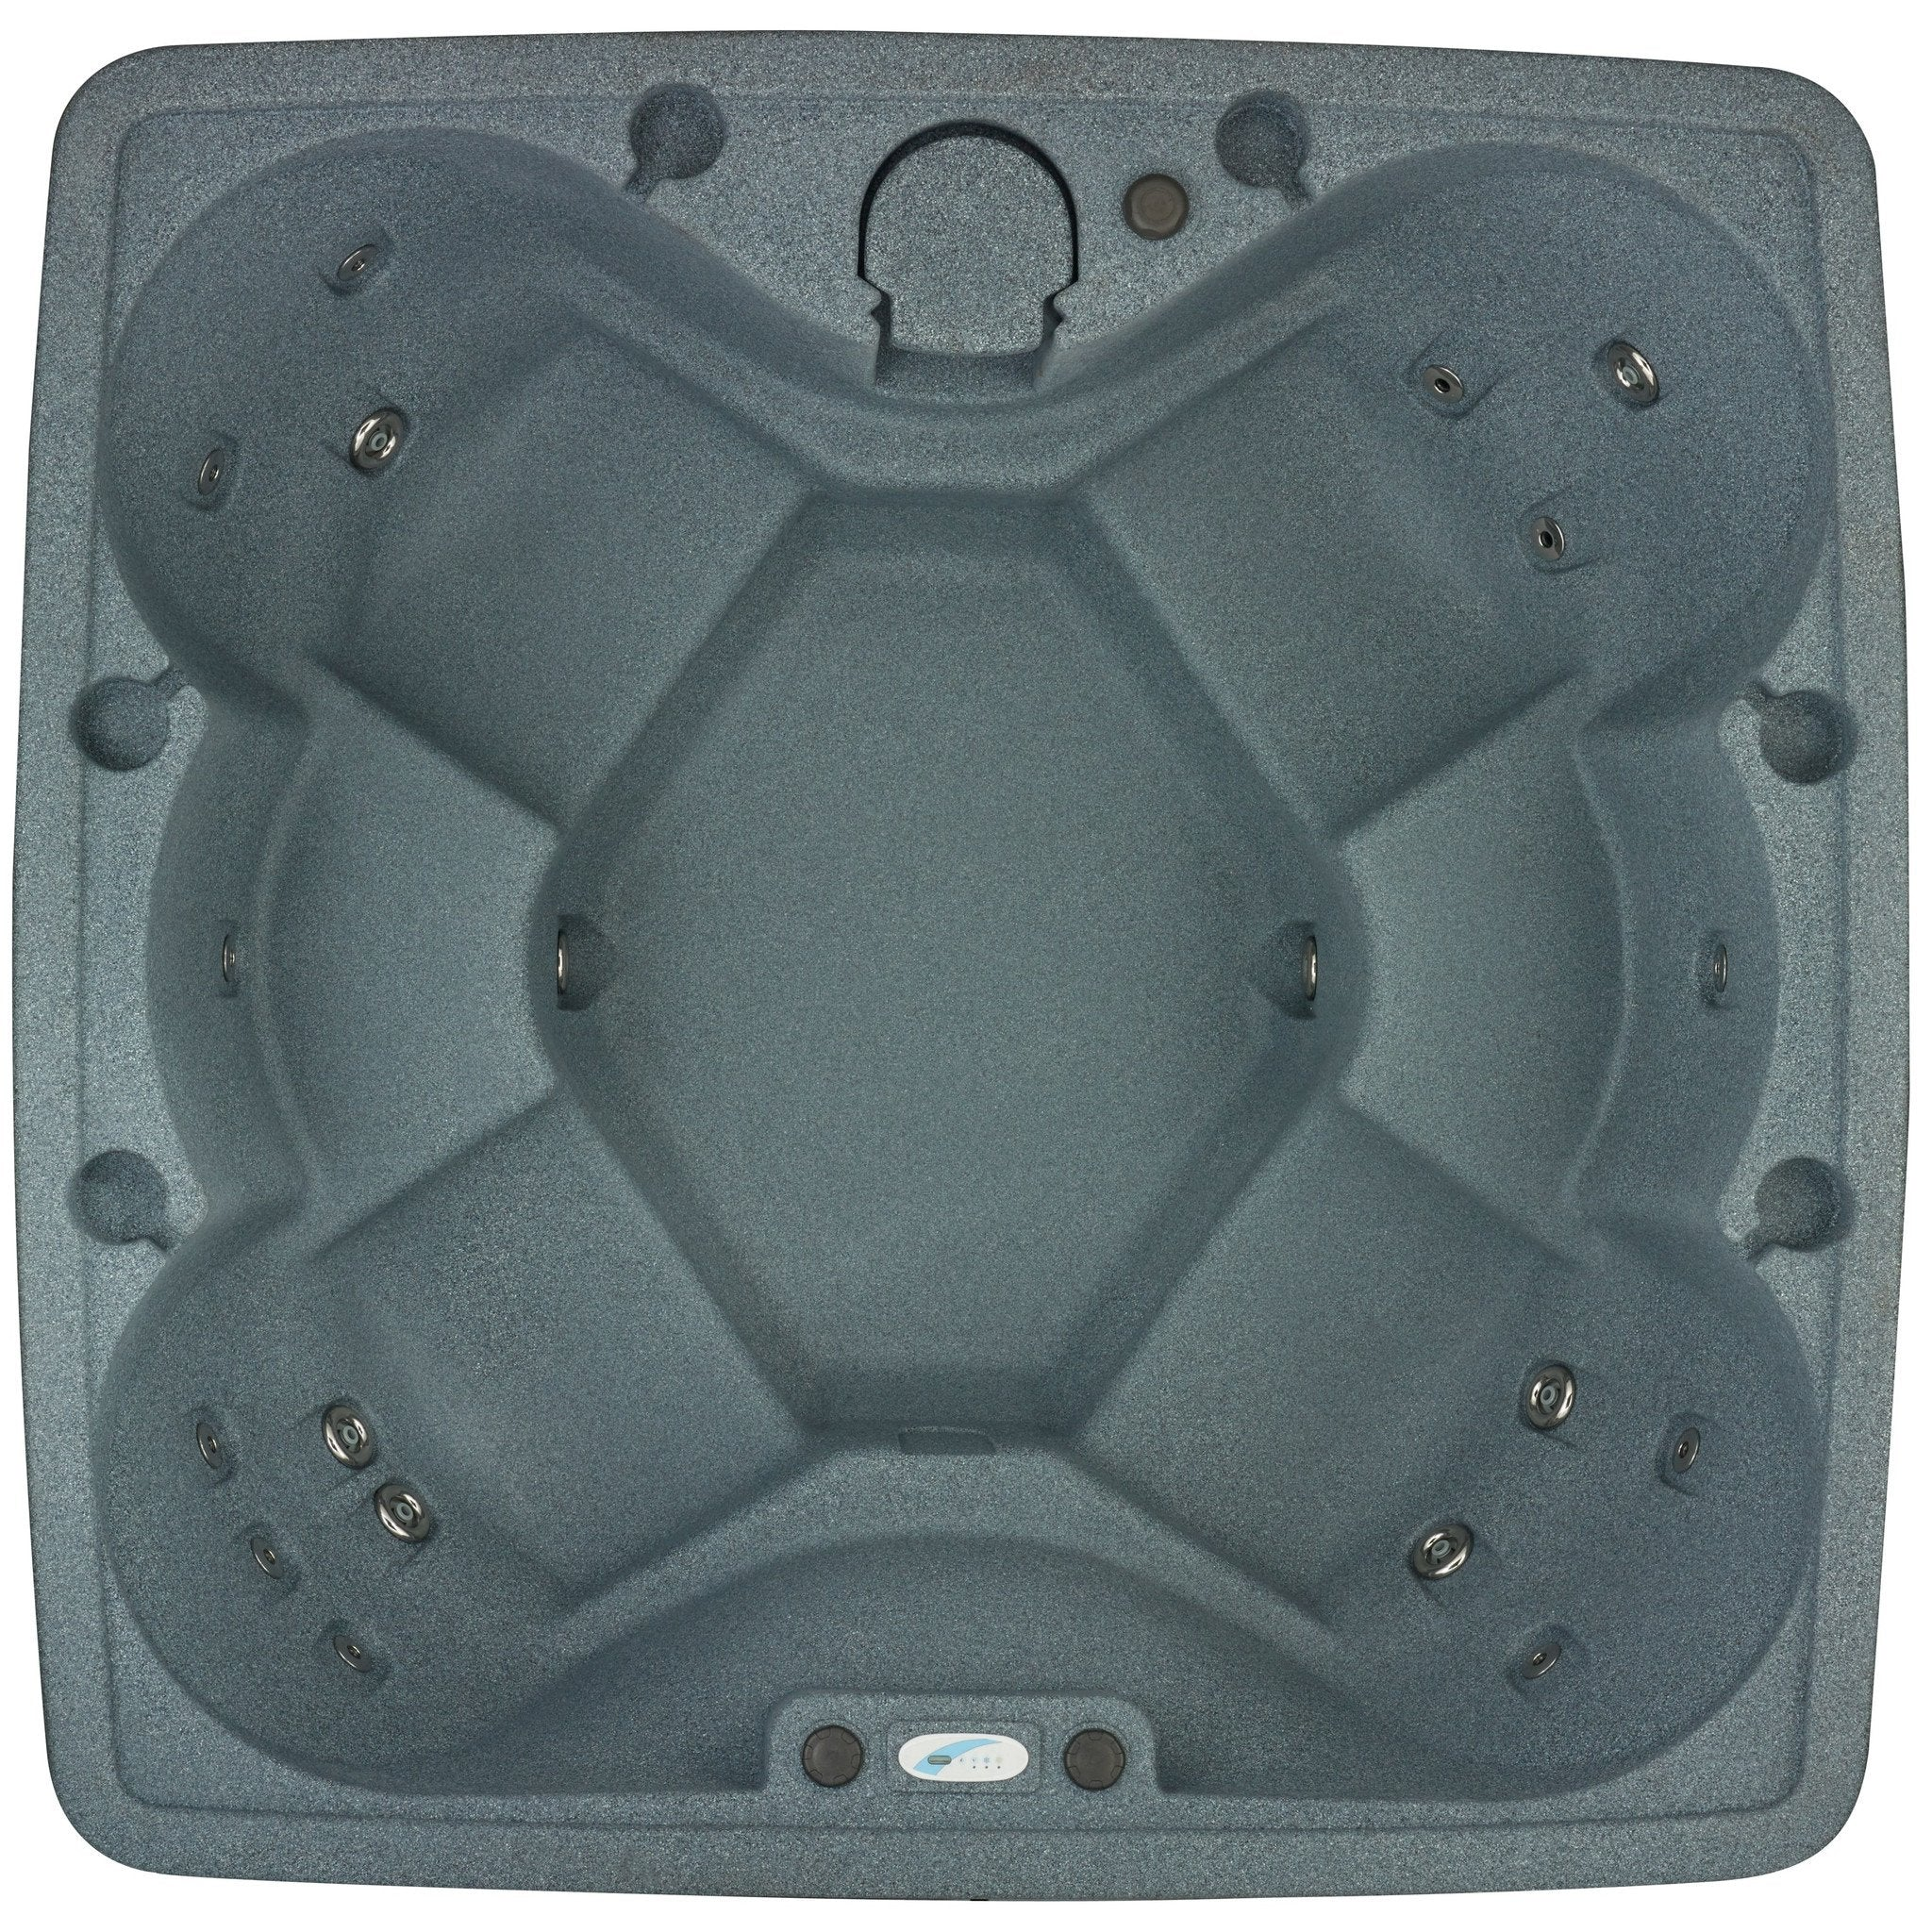 AR-600 6-Person Spa with 19 Jets in Stainless Steel and Easy Plug-N-Play and LED Waterfall